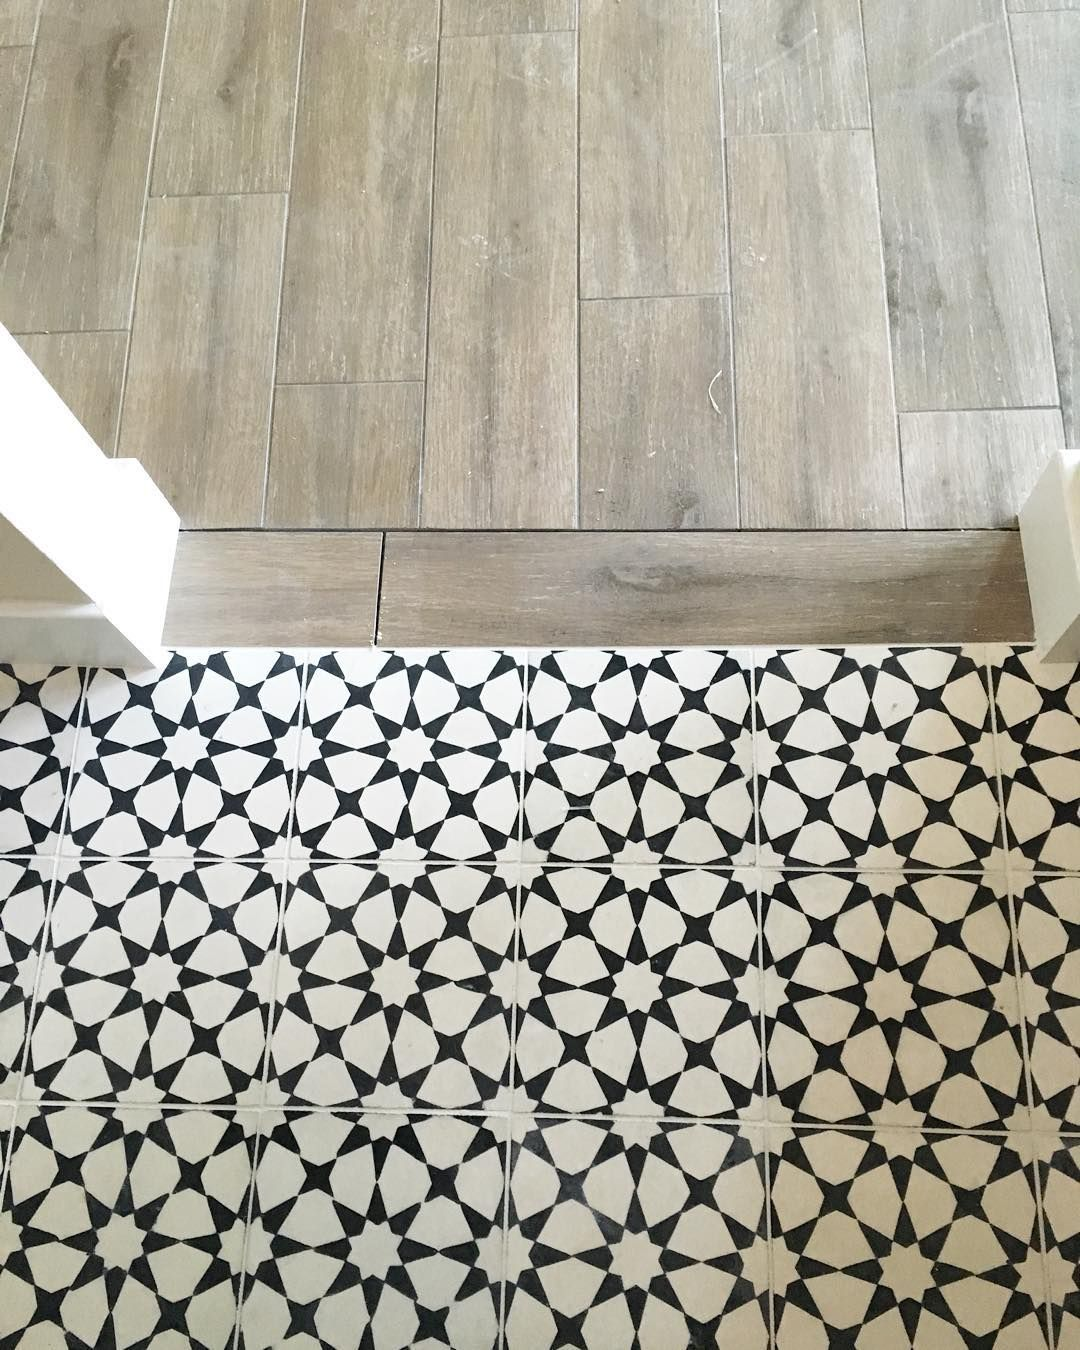 Vanessa Matsalla Wood To Cement Tile Transition